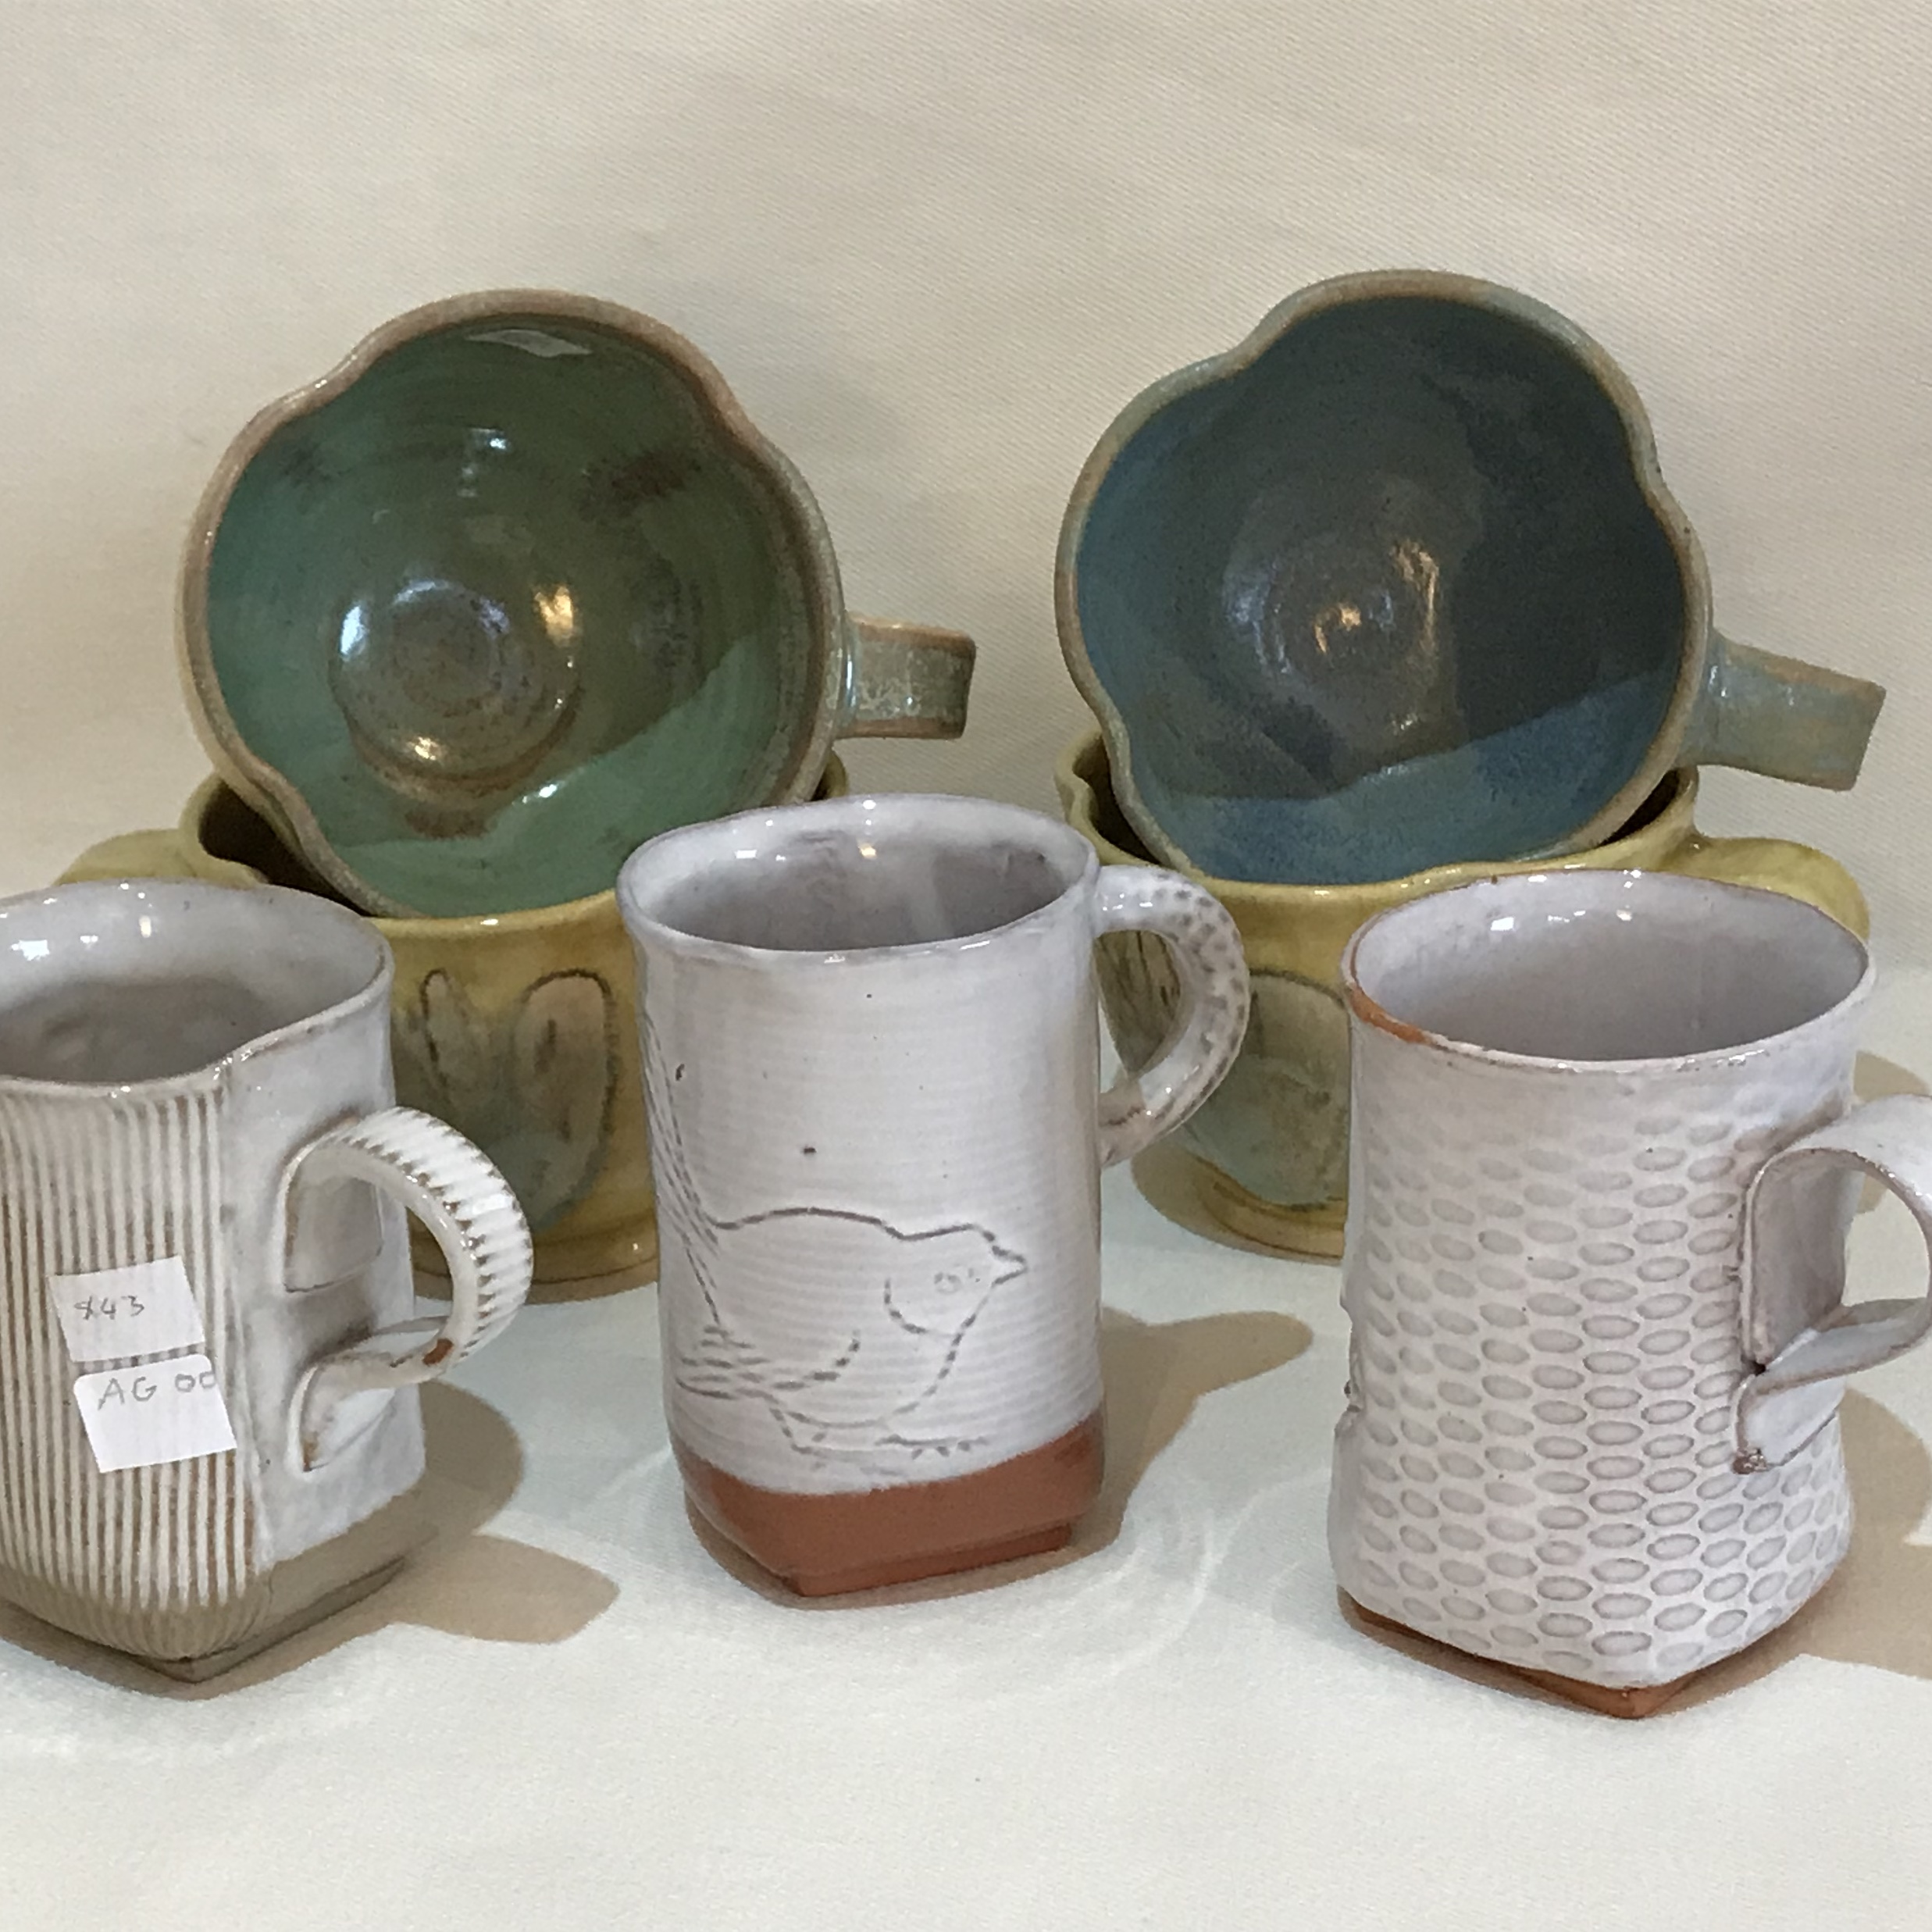 A collection of cups from our potters